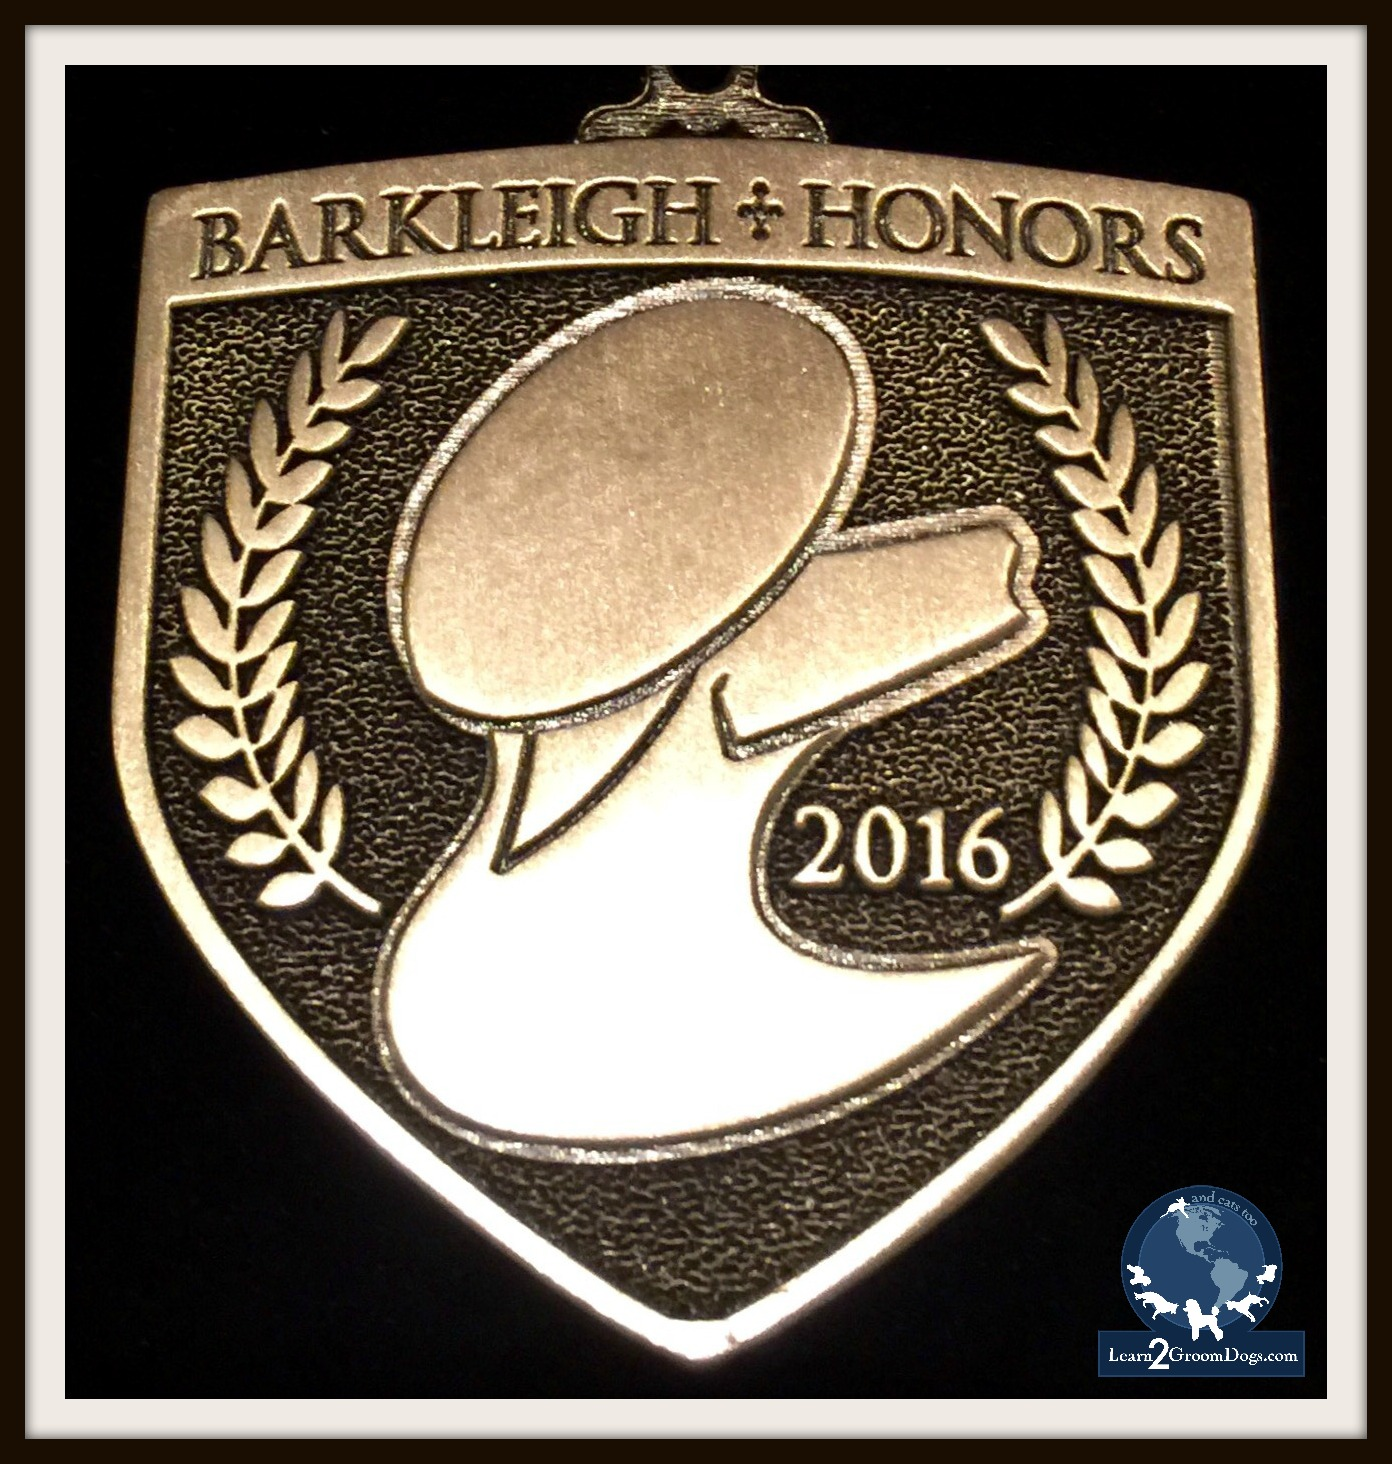 Winner of the 2016 Barkleigh Honors Award for Website of the Year